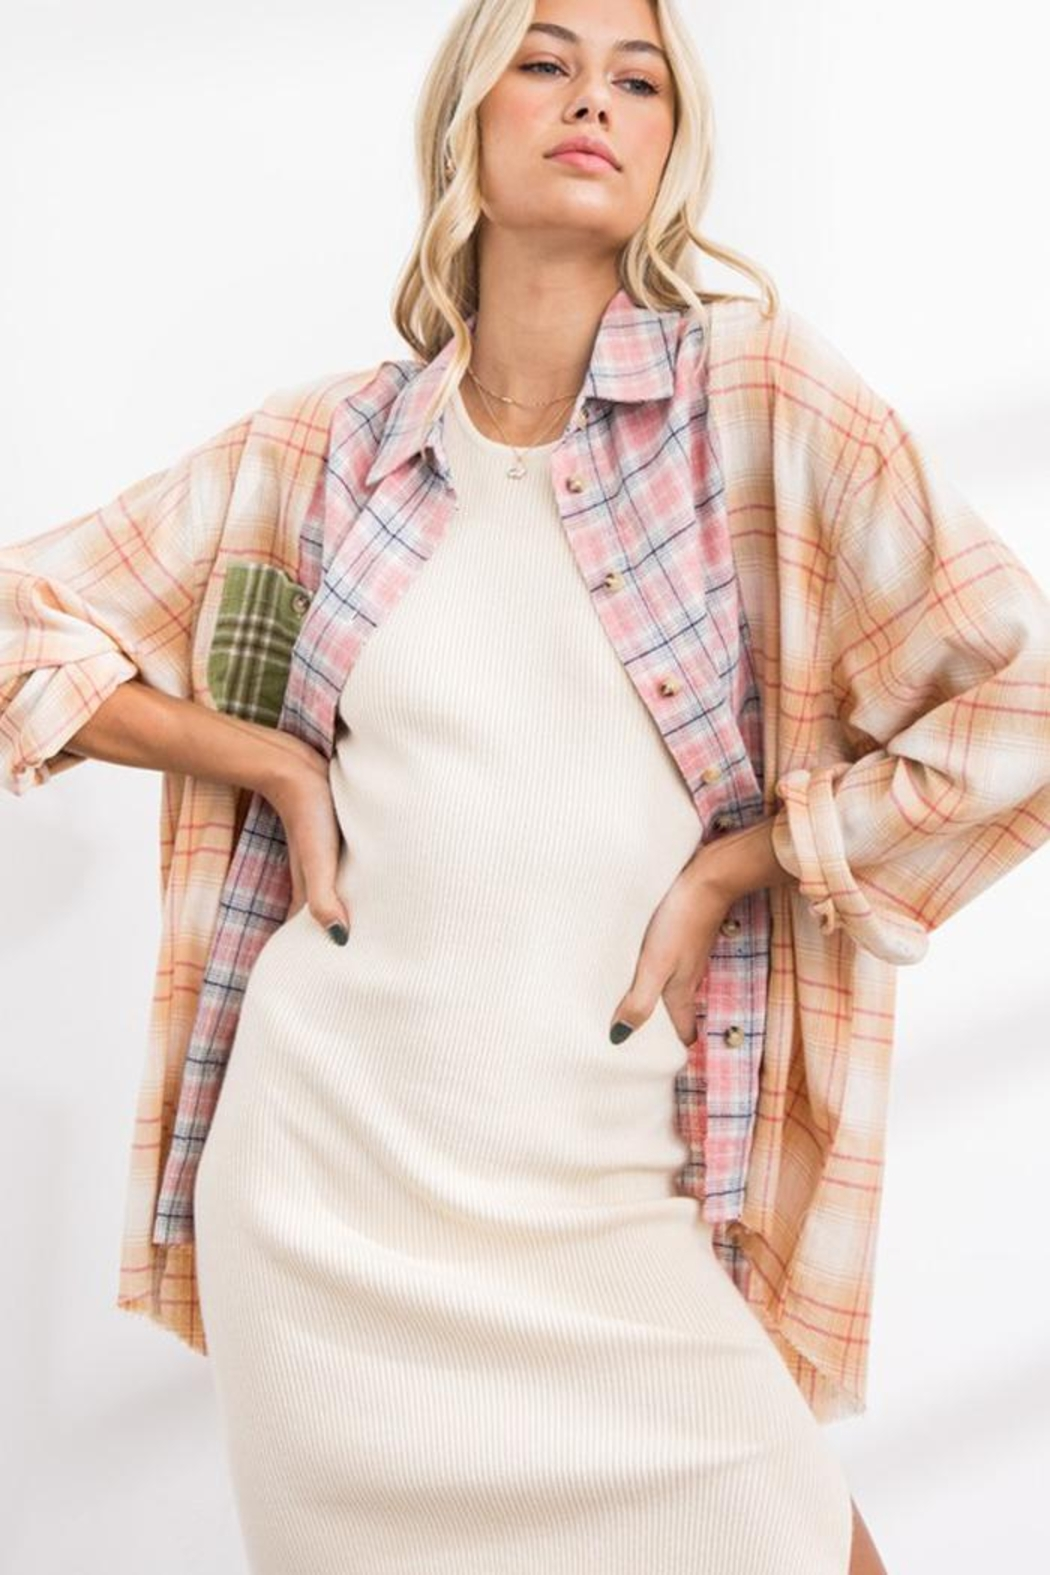 Papermoon Patchwork Oversized Soft Cotton Plaid Button Down Shirt Top - Front Full Image